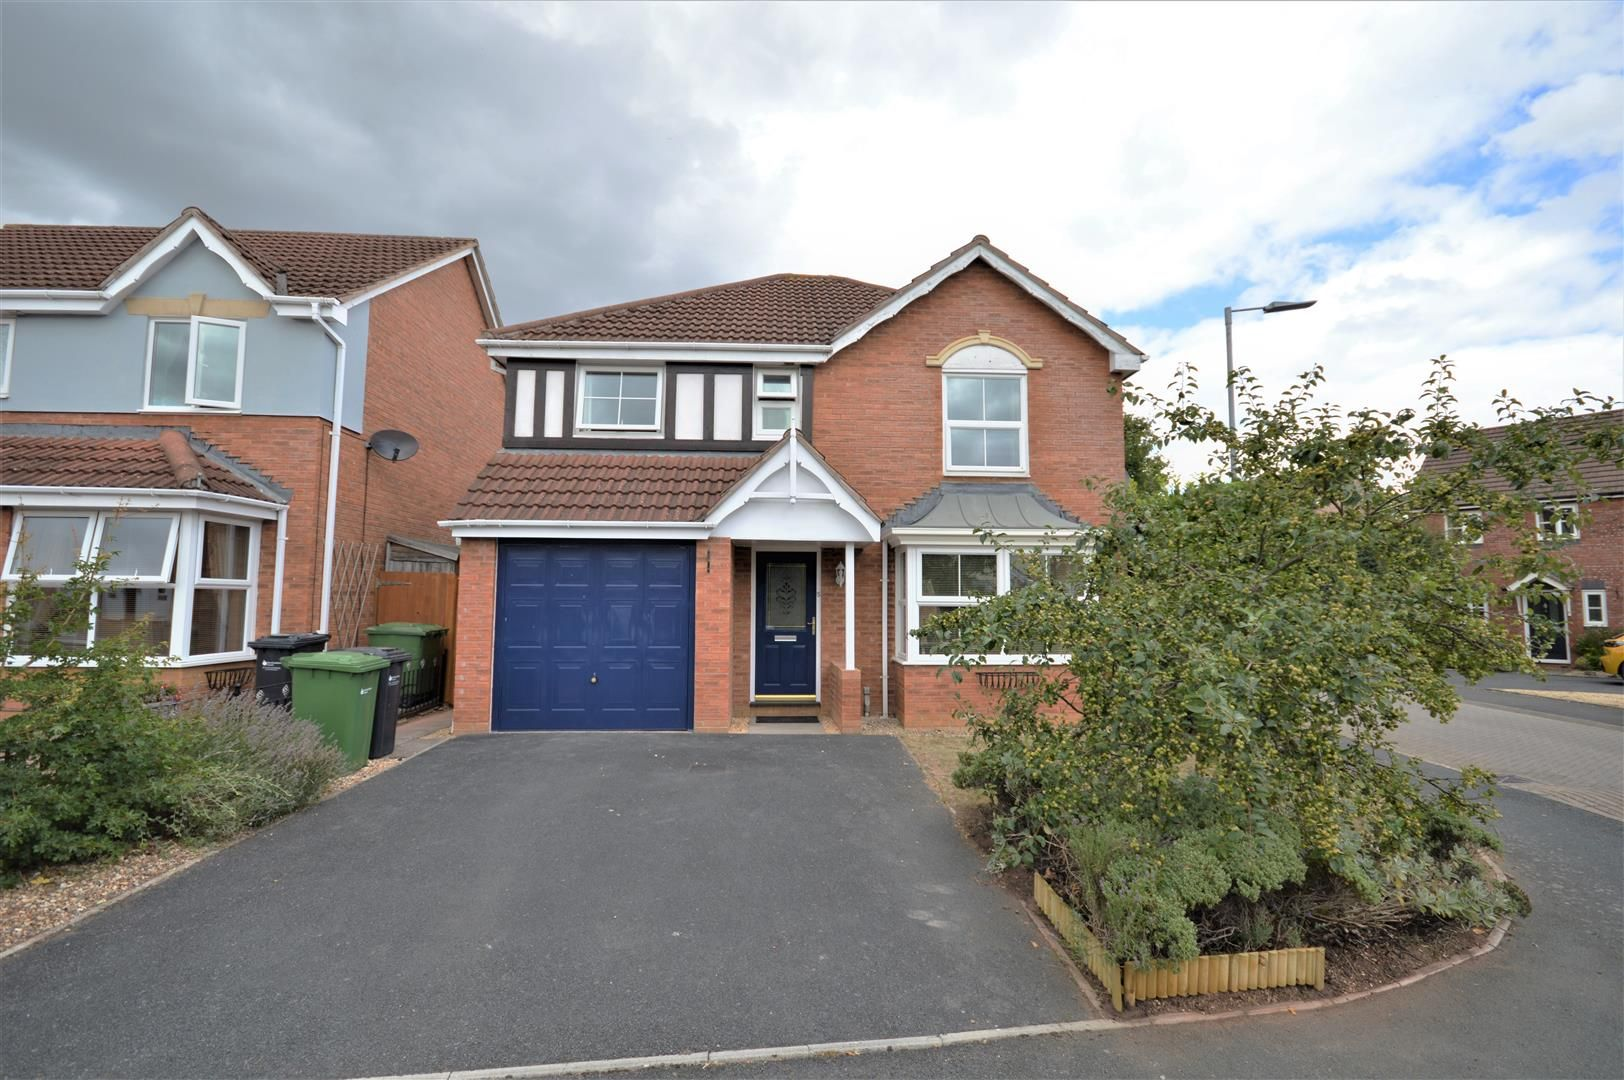 4 bed detached for sale in Belmont, HR2